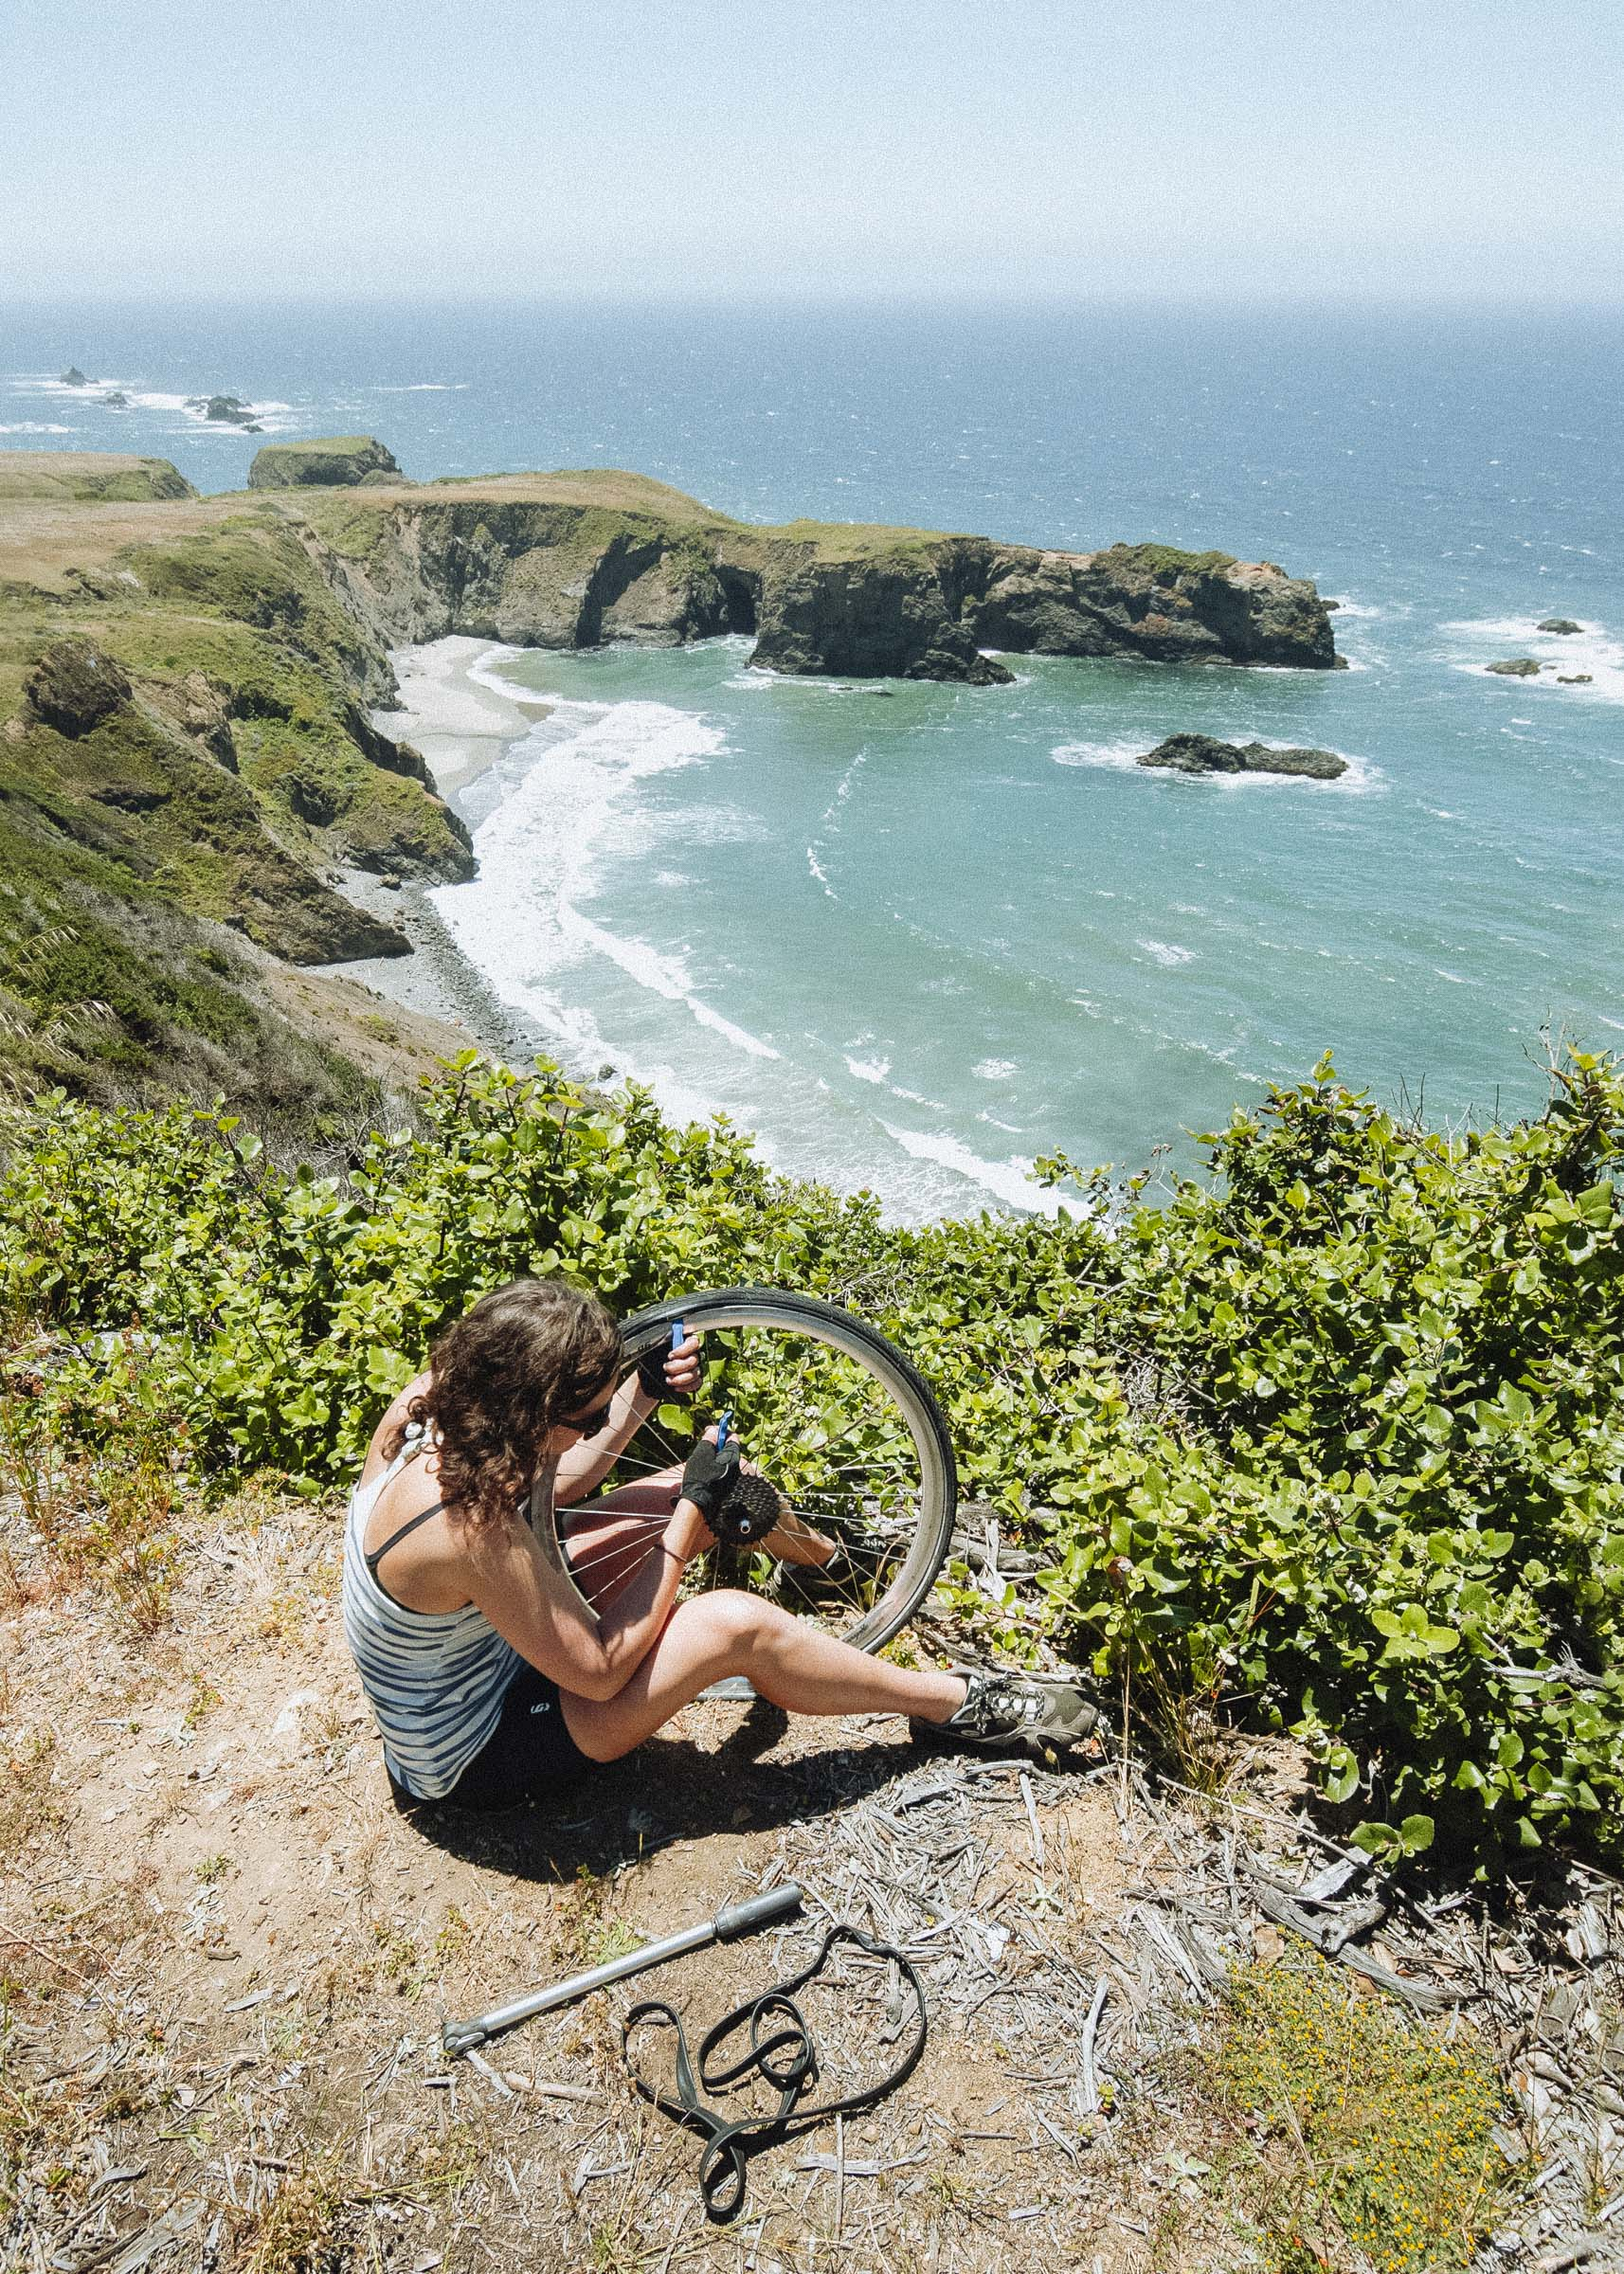 Bicycling Down the Coast